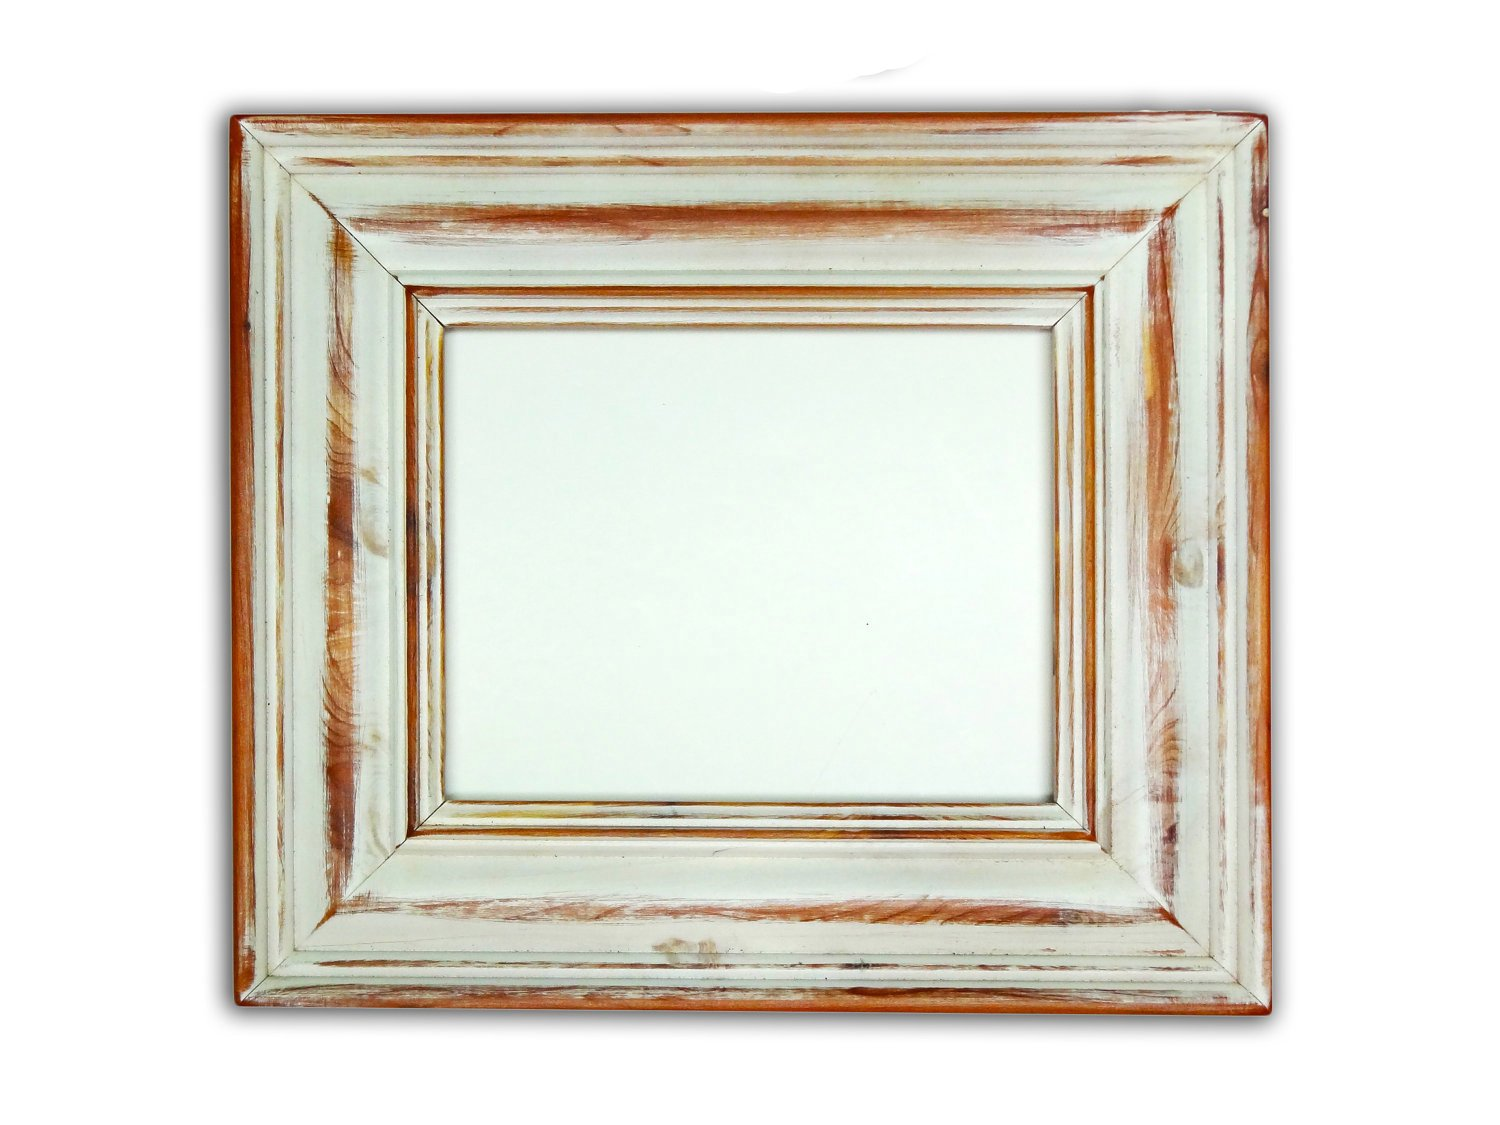 Rustic frame clipart 1 » Clipart Station.